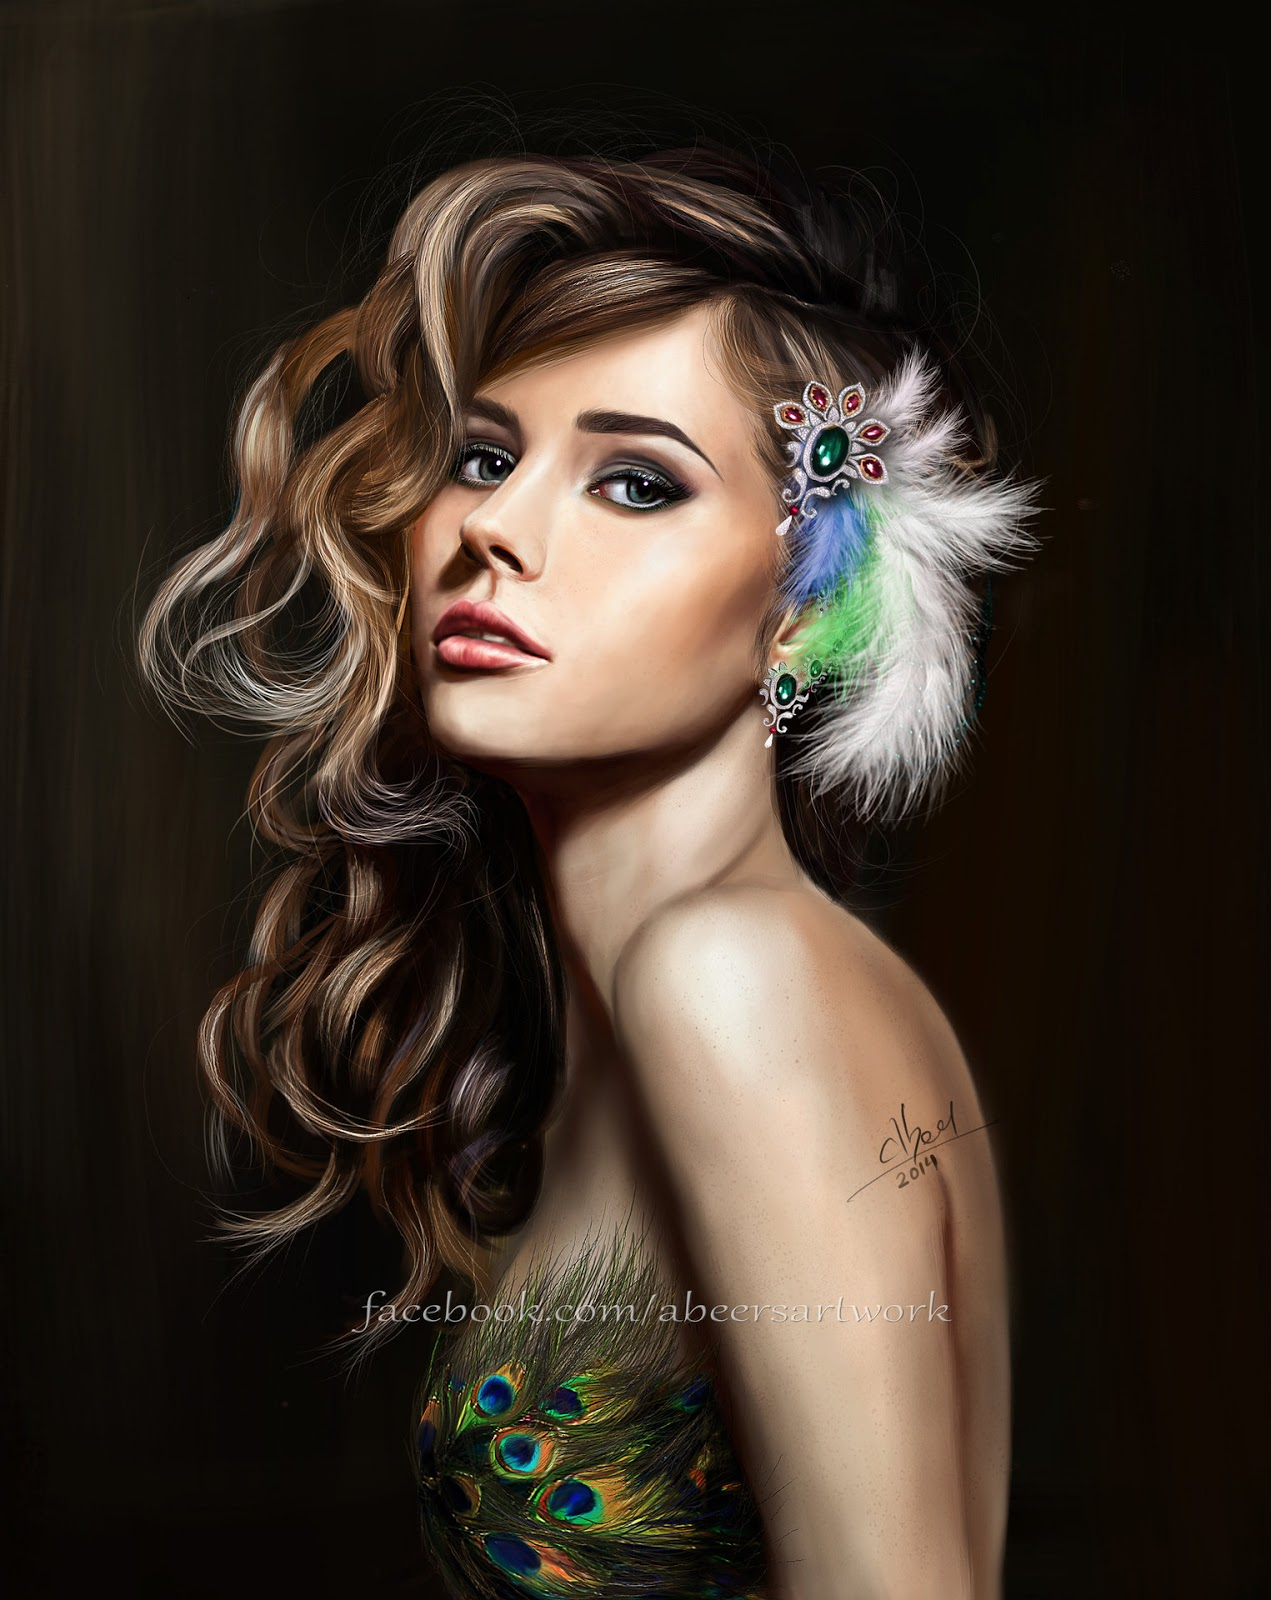 Digital Art by Indian Artist - Abeer Malik